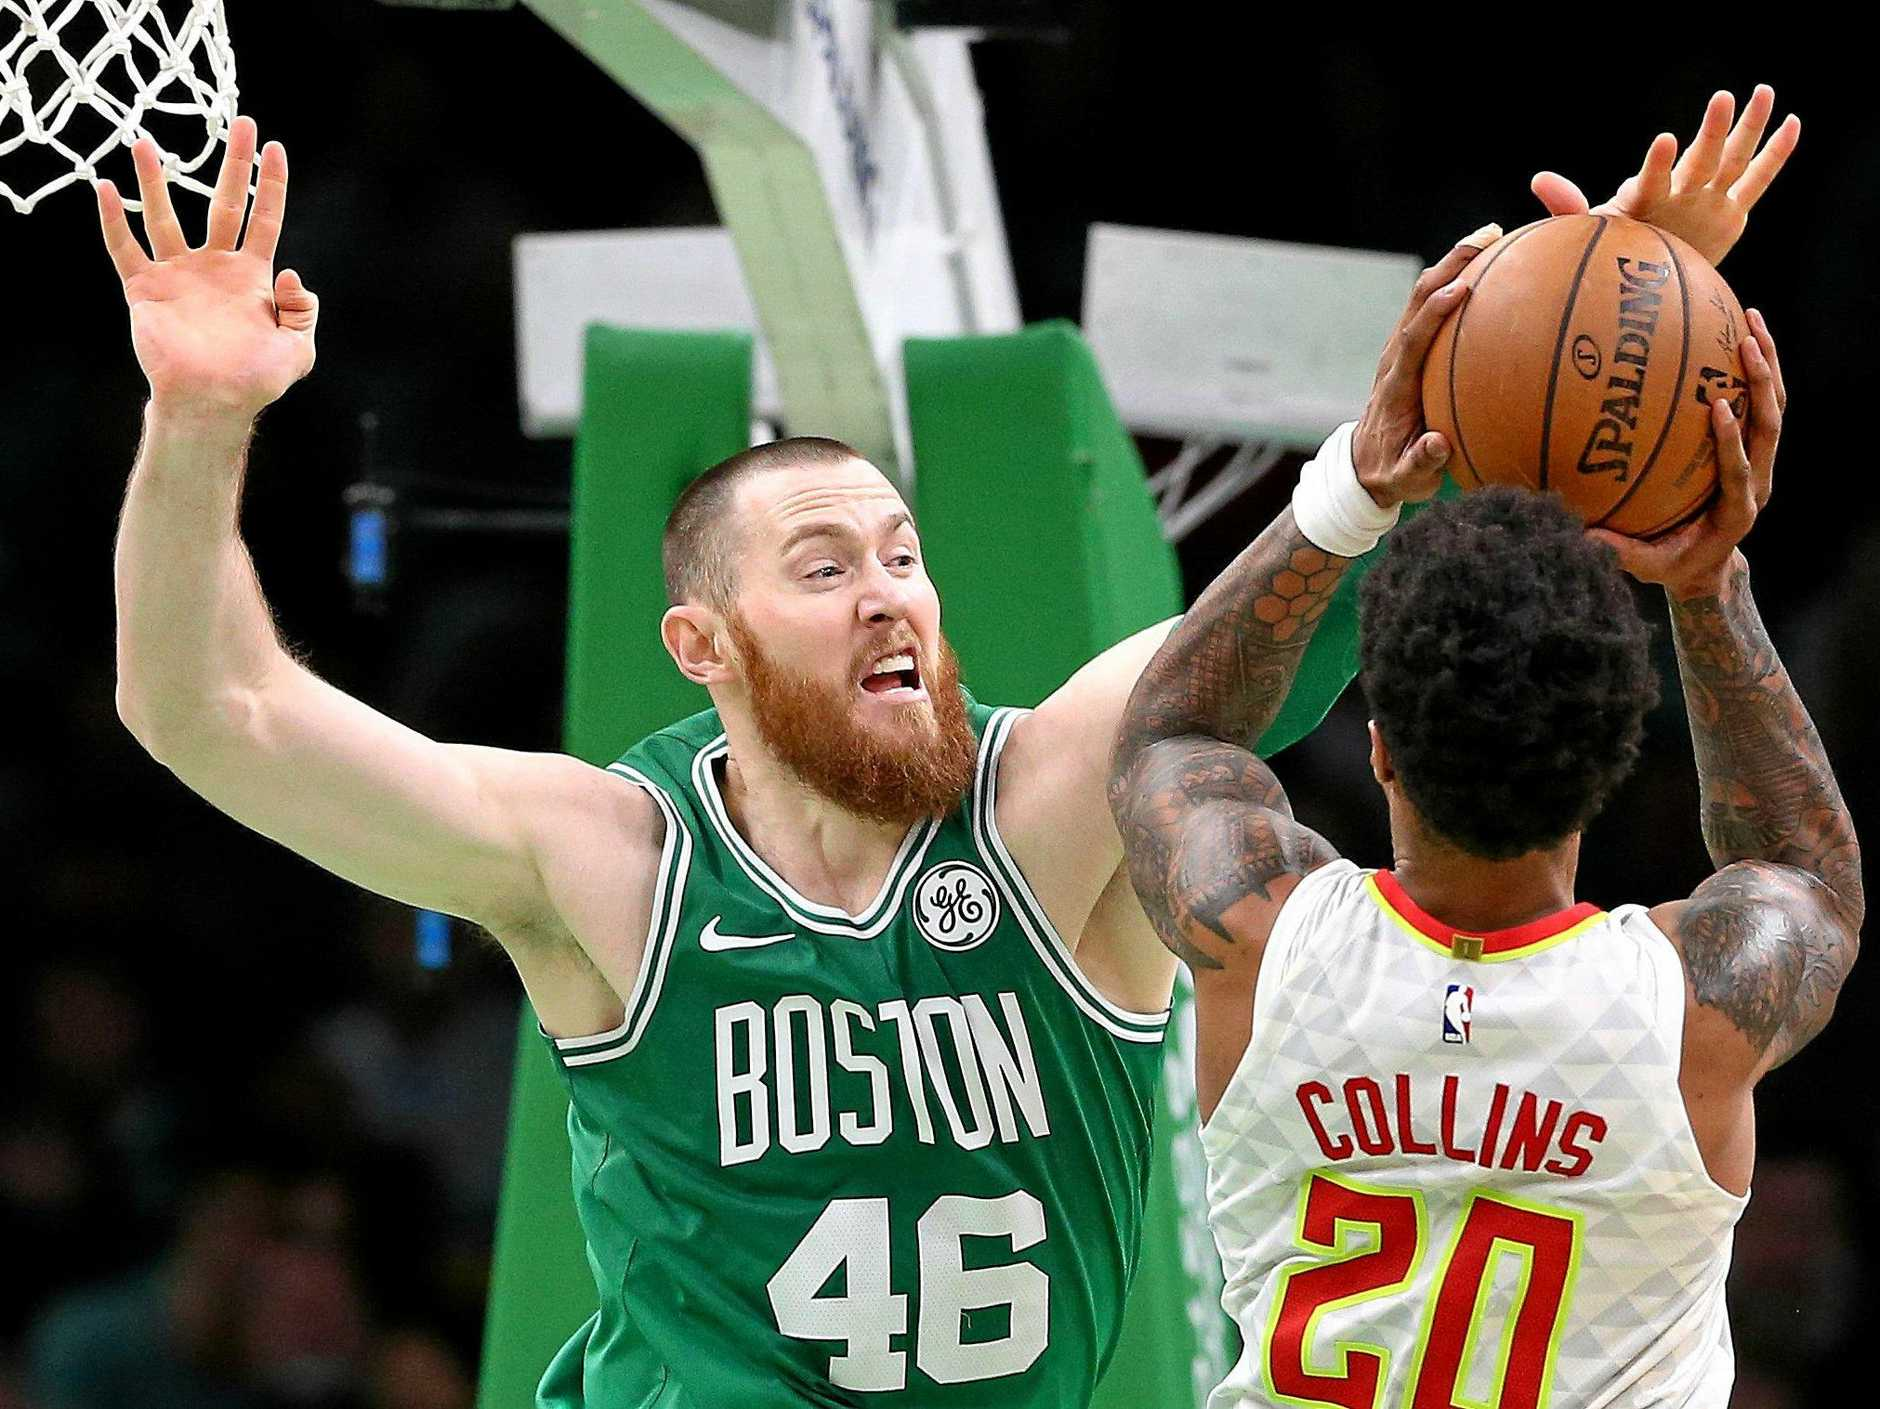 The Celtic's Aron Baynes blocks a shot from John Collins of the Atlanta Hawks on March 16 in Boston, Massachusetts. Picture: Maddie Meyer/Getty Images